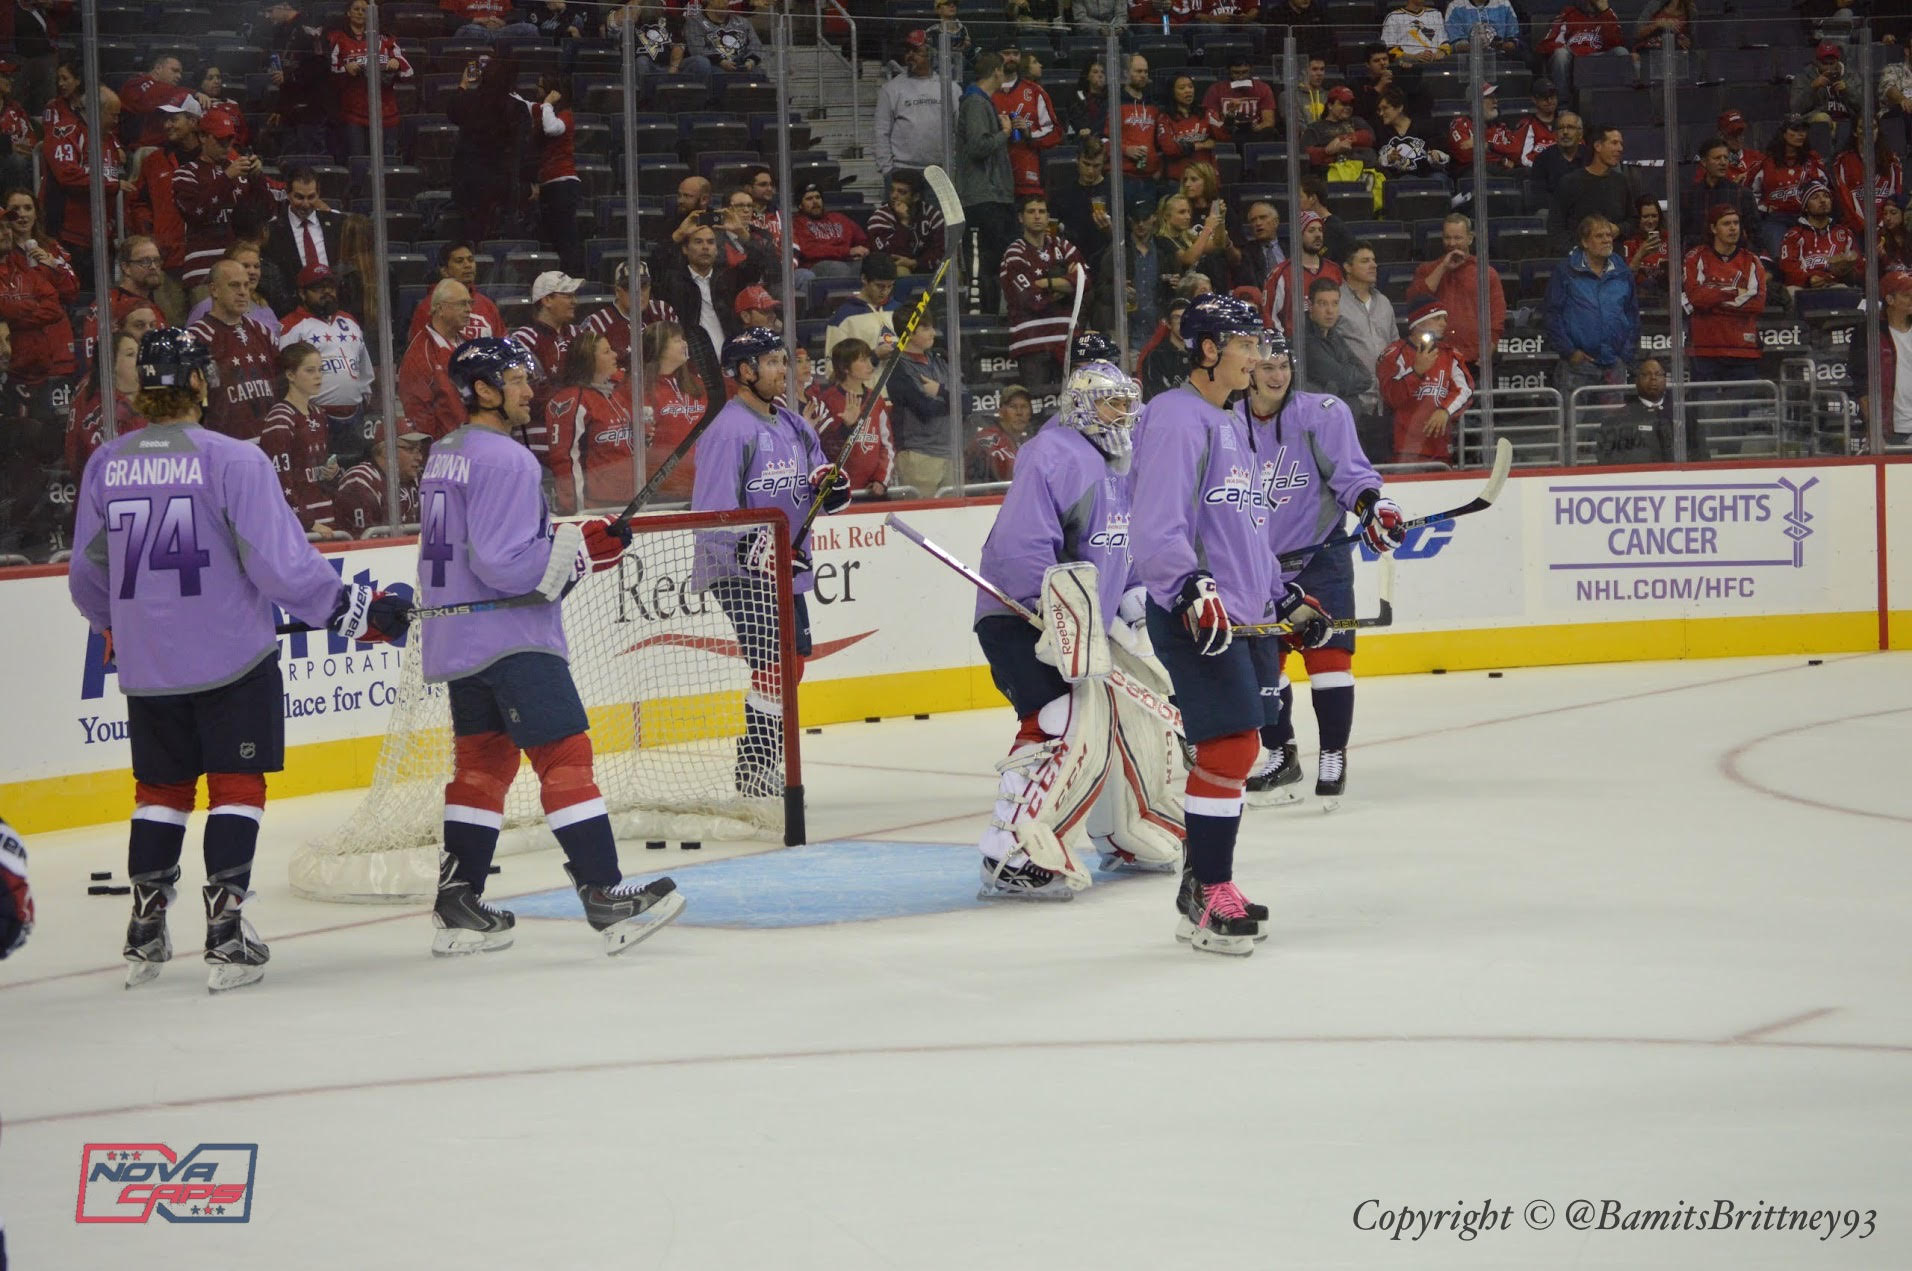 ... Capitals Hockey Fights cancer event. hockey1. hockey2. hockey4.  hockey5. hockey8. hockey7. hockey9 2d69f1f3d